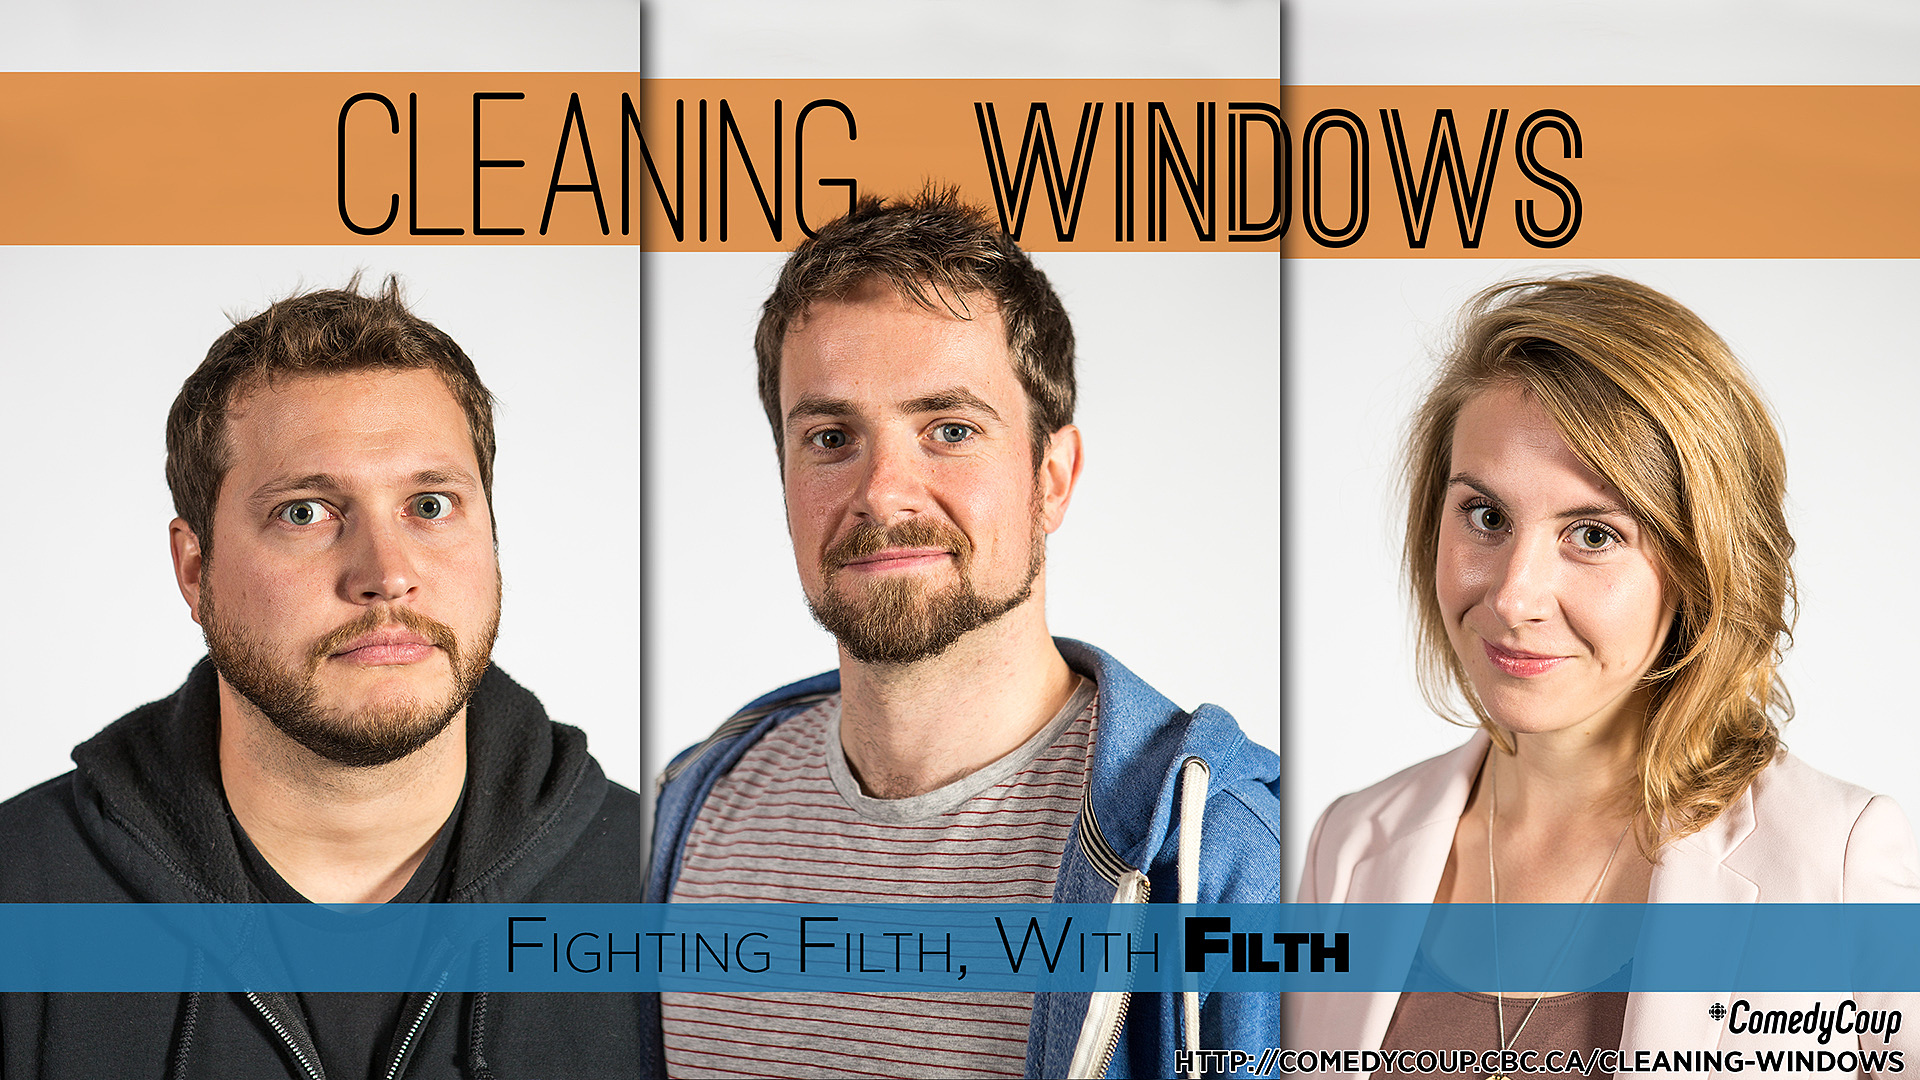 Week 4 Key It: Poster B Cleaning Windows